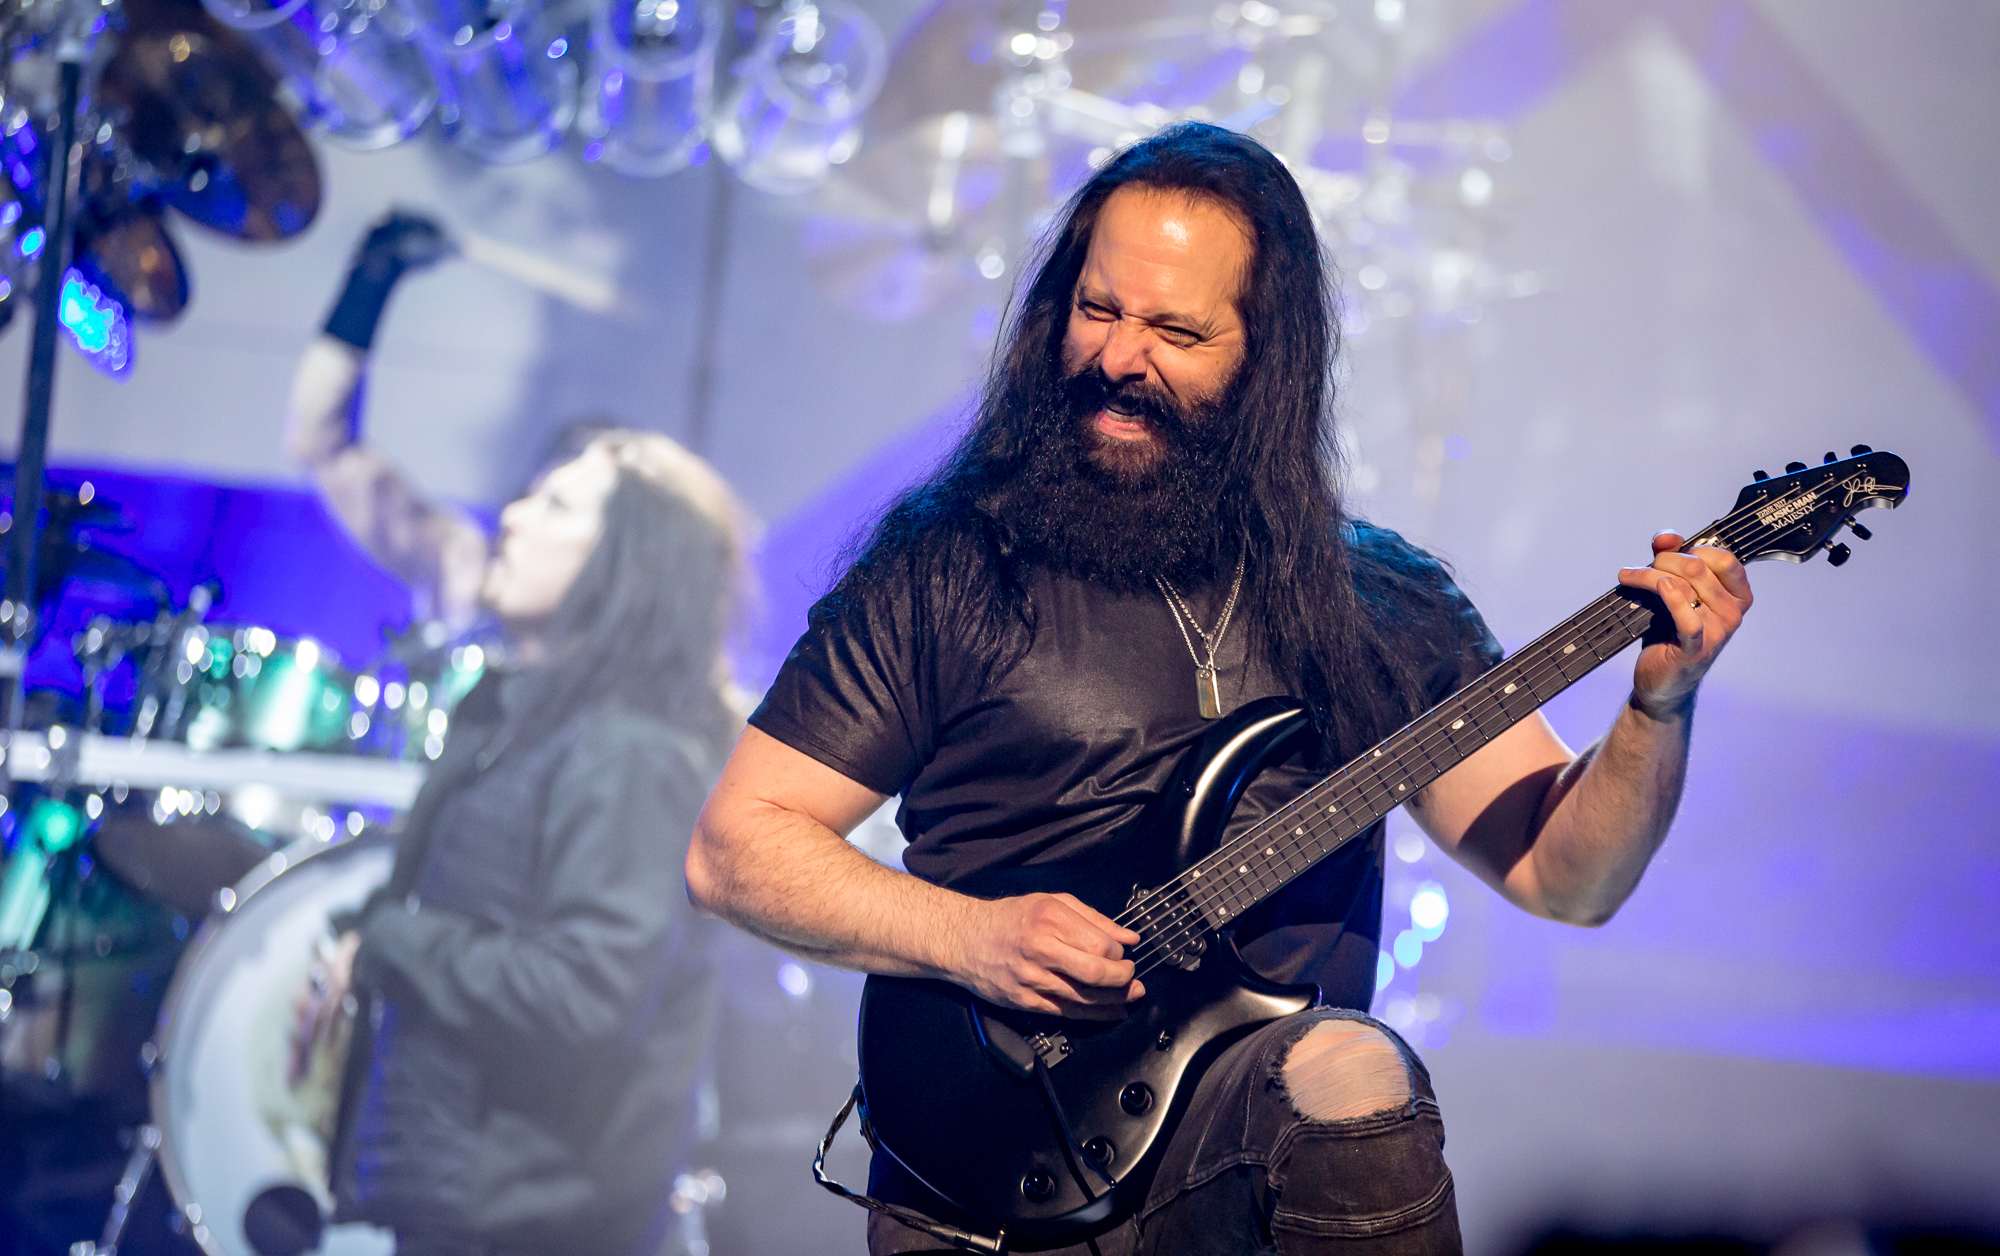 Dream Theater_SteveRose-33.jpg